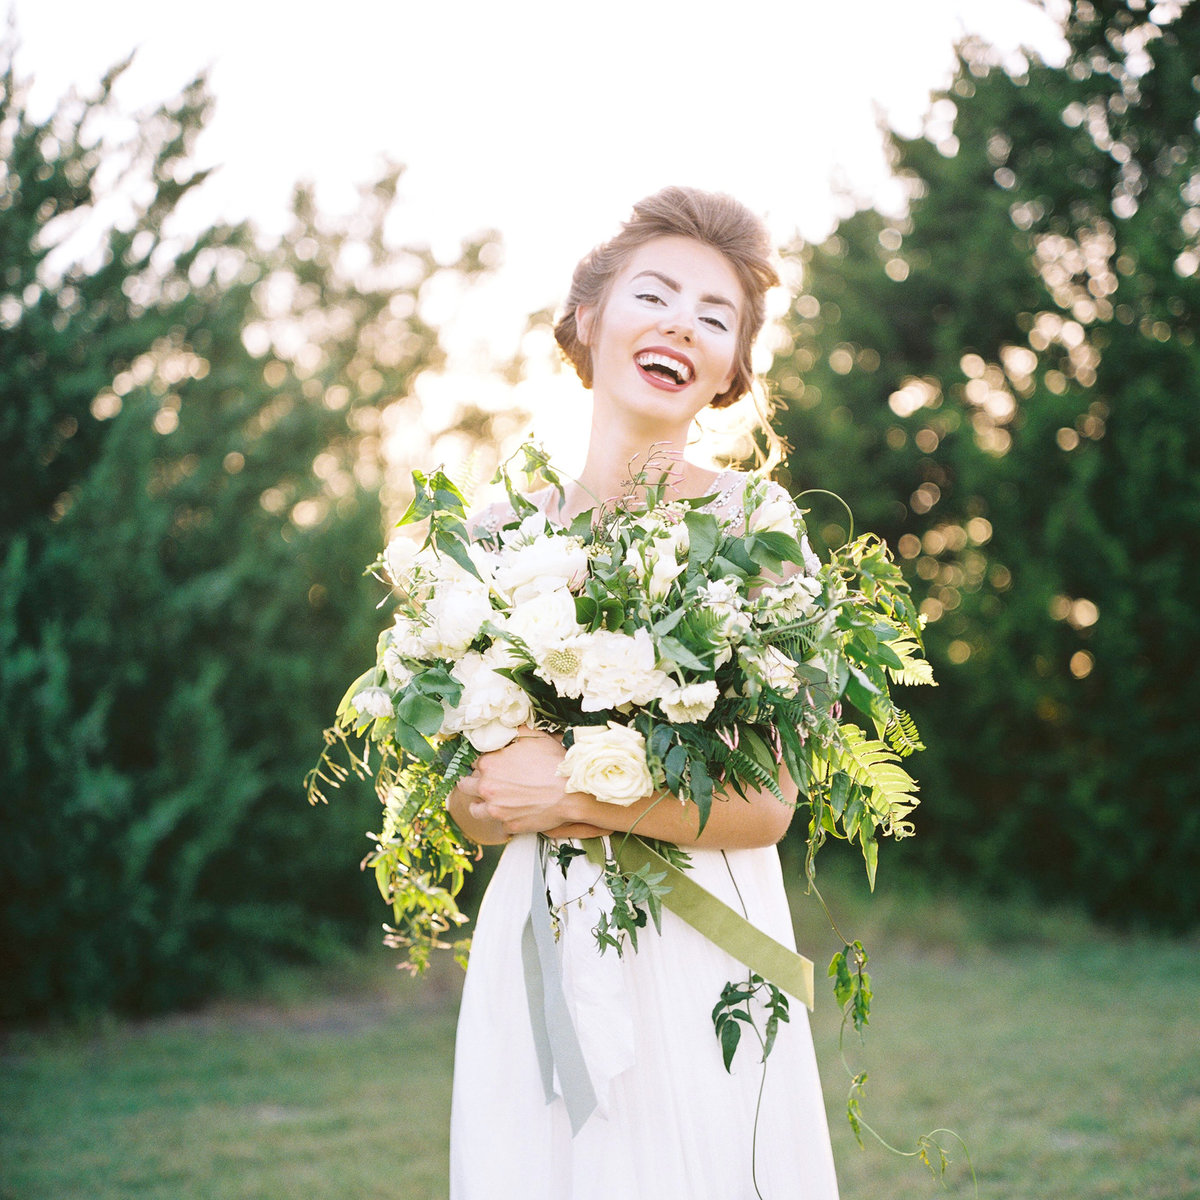 Wedding Photographer & Destination Elopement Photographer - Jeff Brummett Visuals